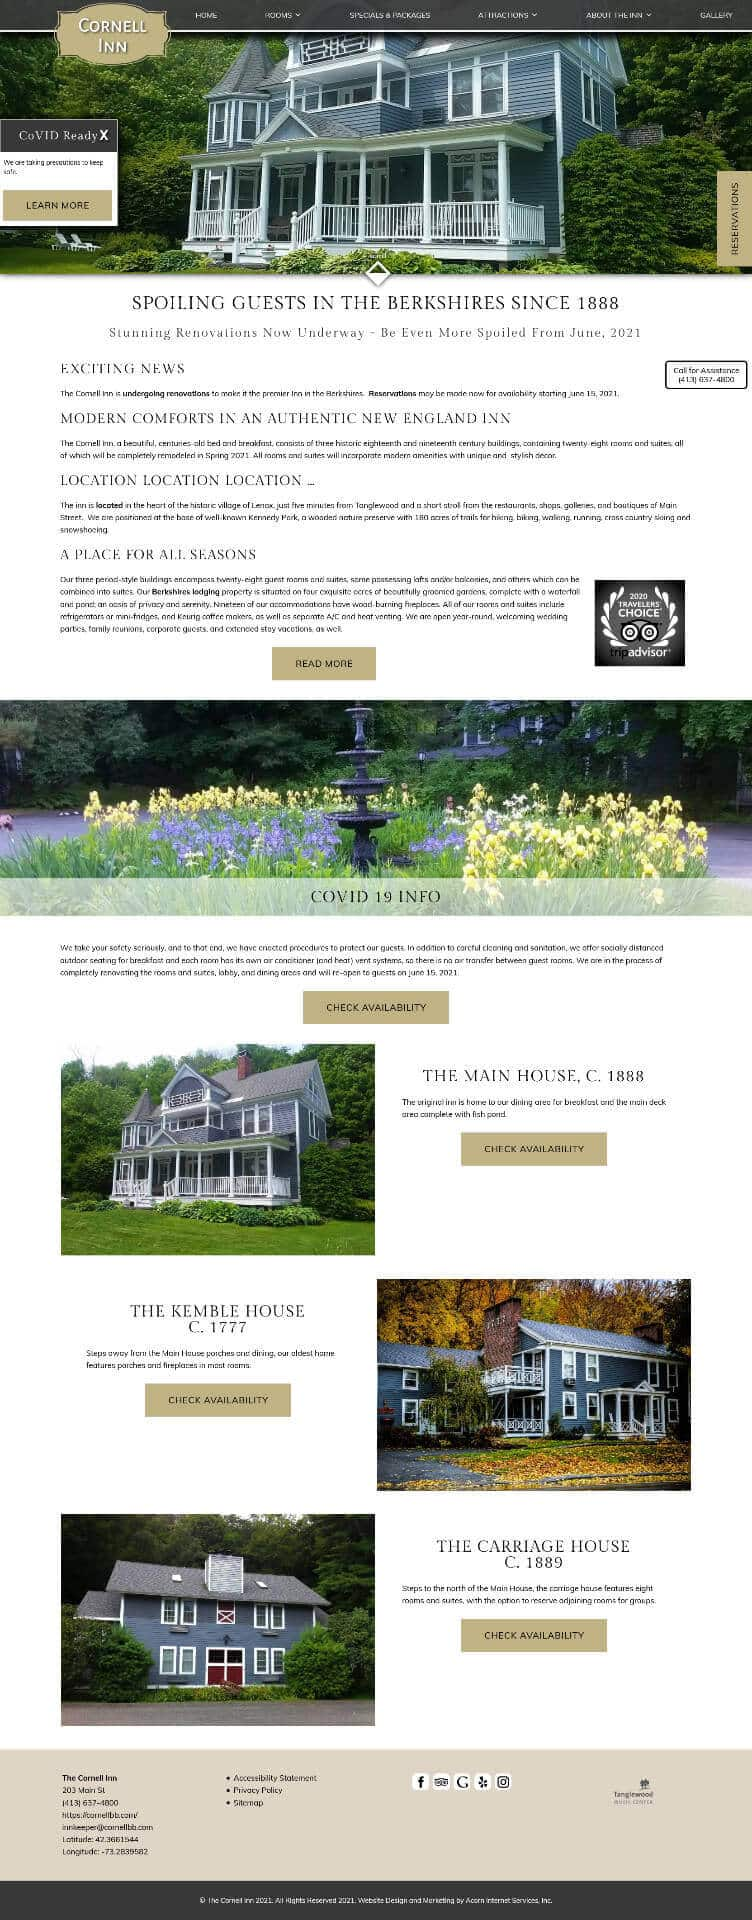 Home page screen shot of The Cornell Inn